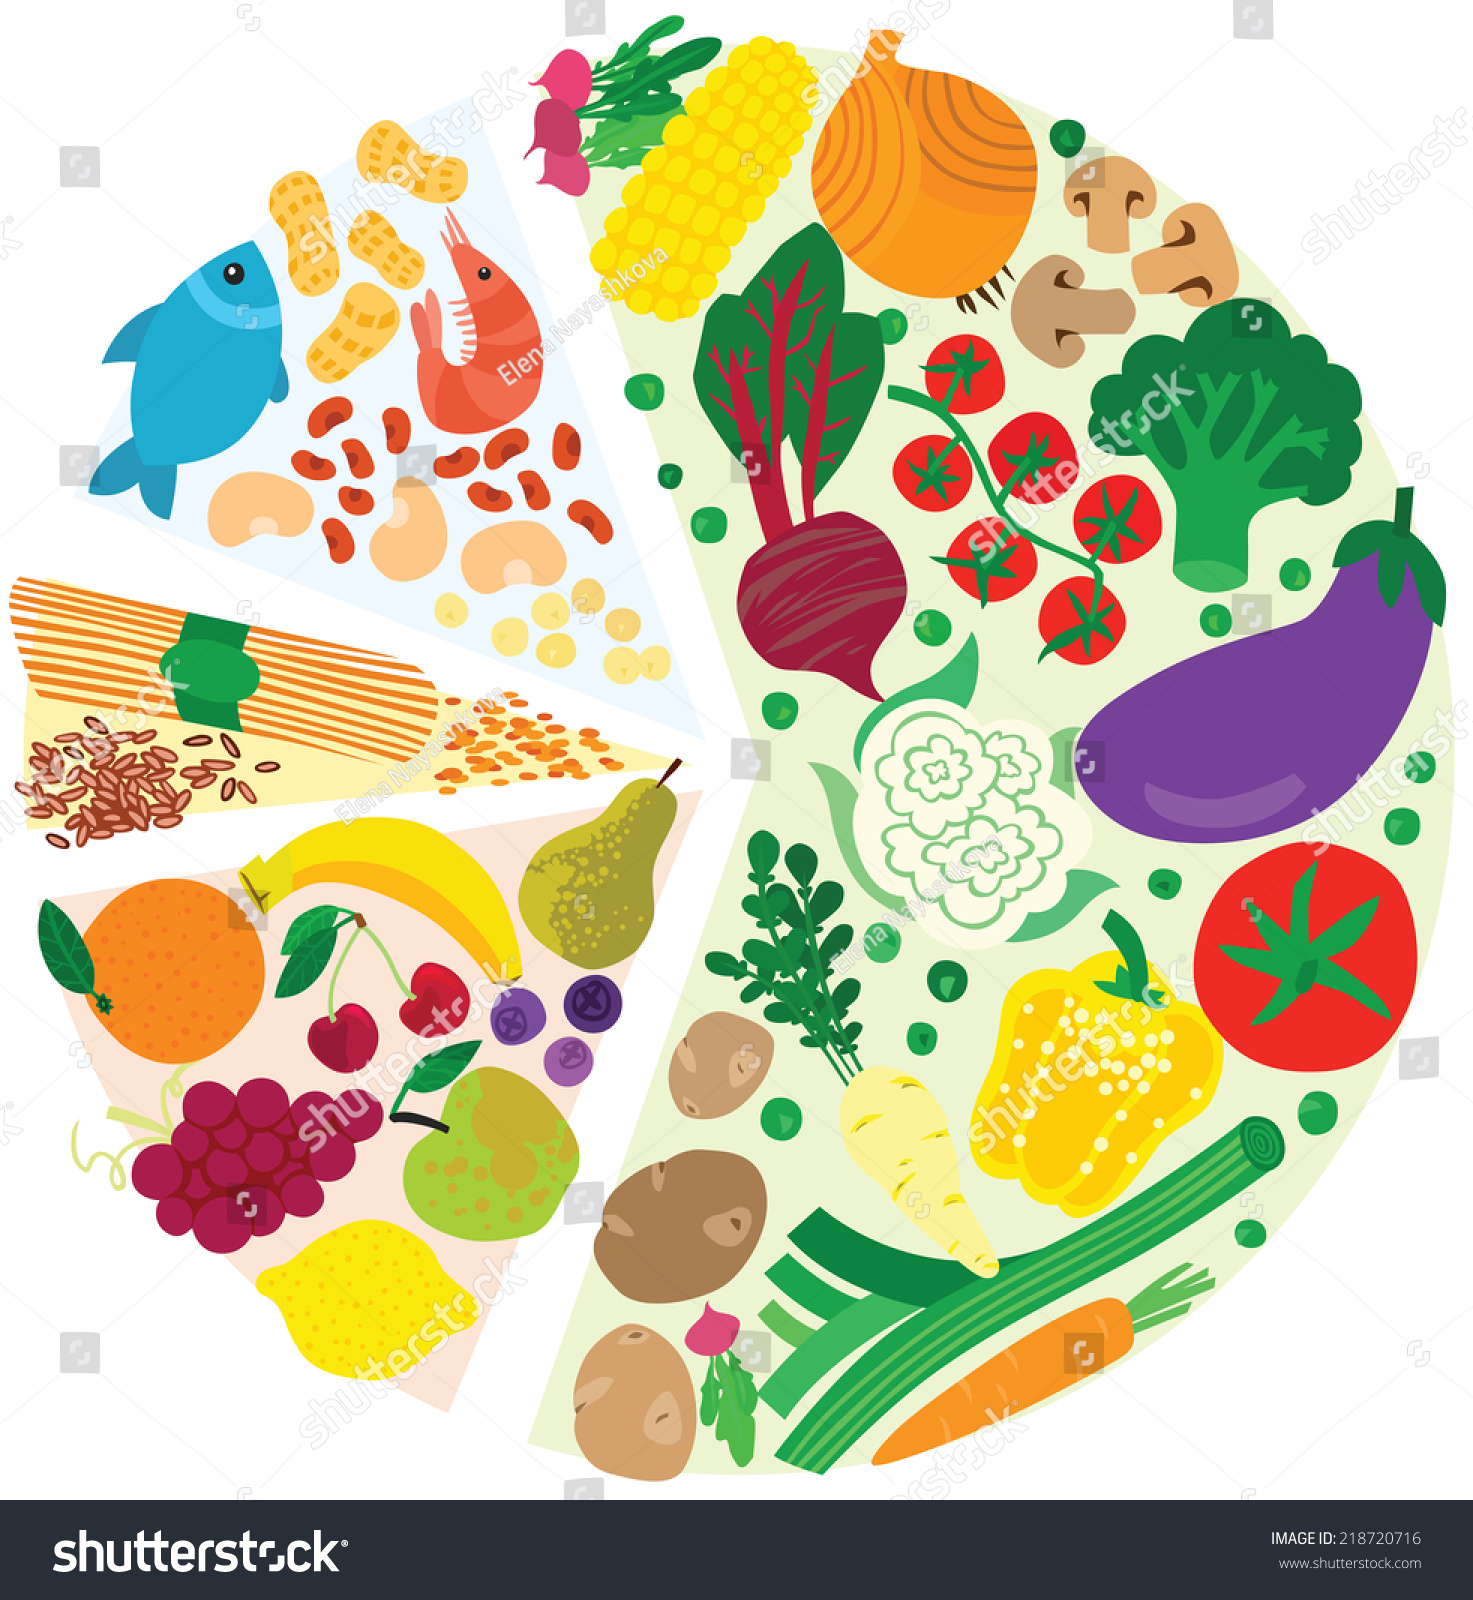 Healthy diet food pie chart stock vector 218720716 shutterstock healthy diet food pie chart nvjuhfo Image collections